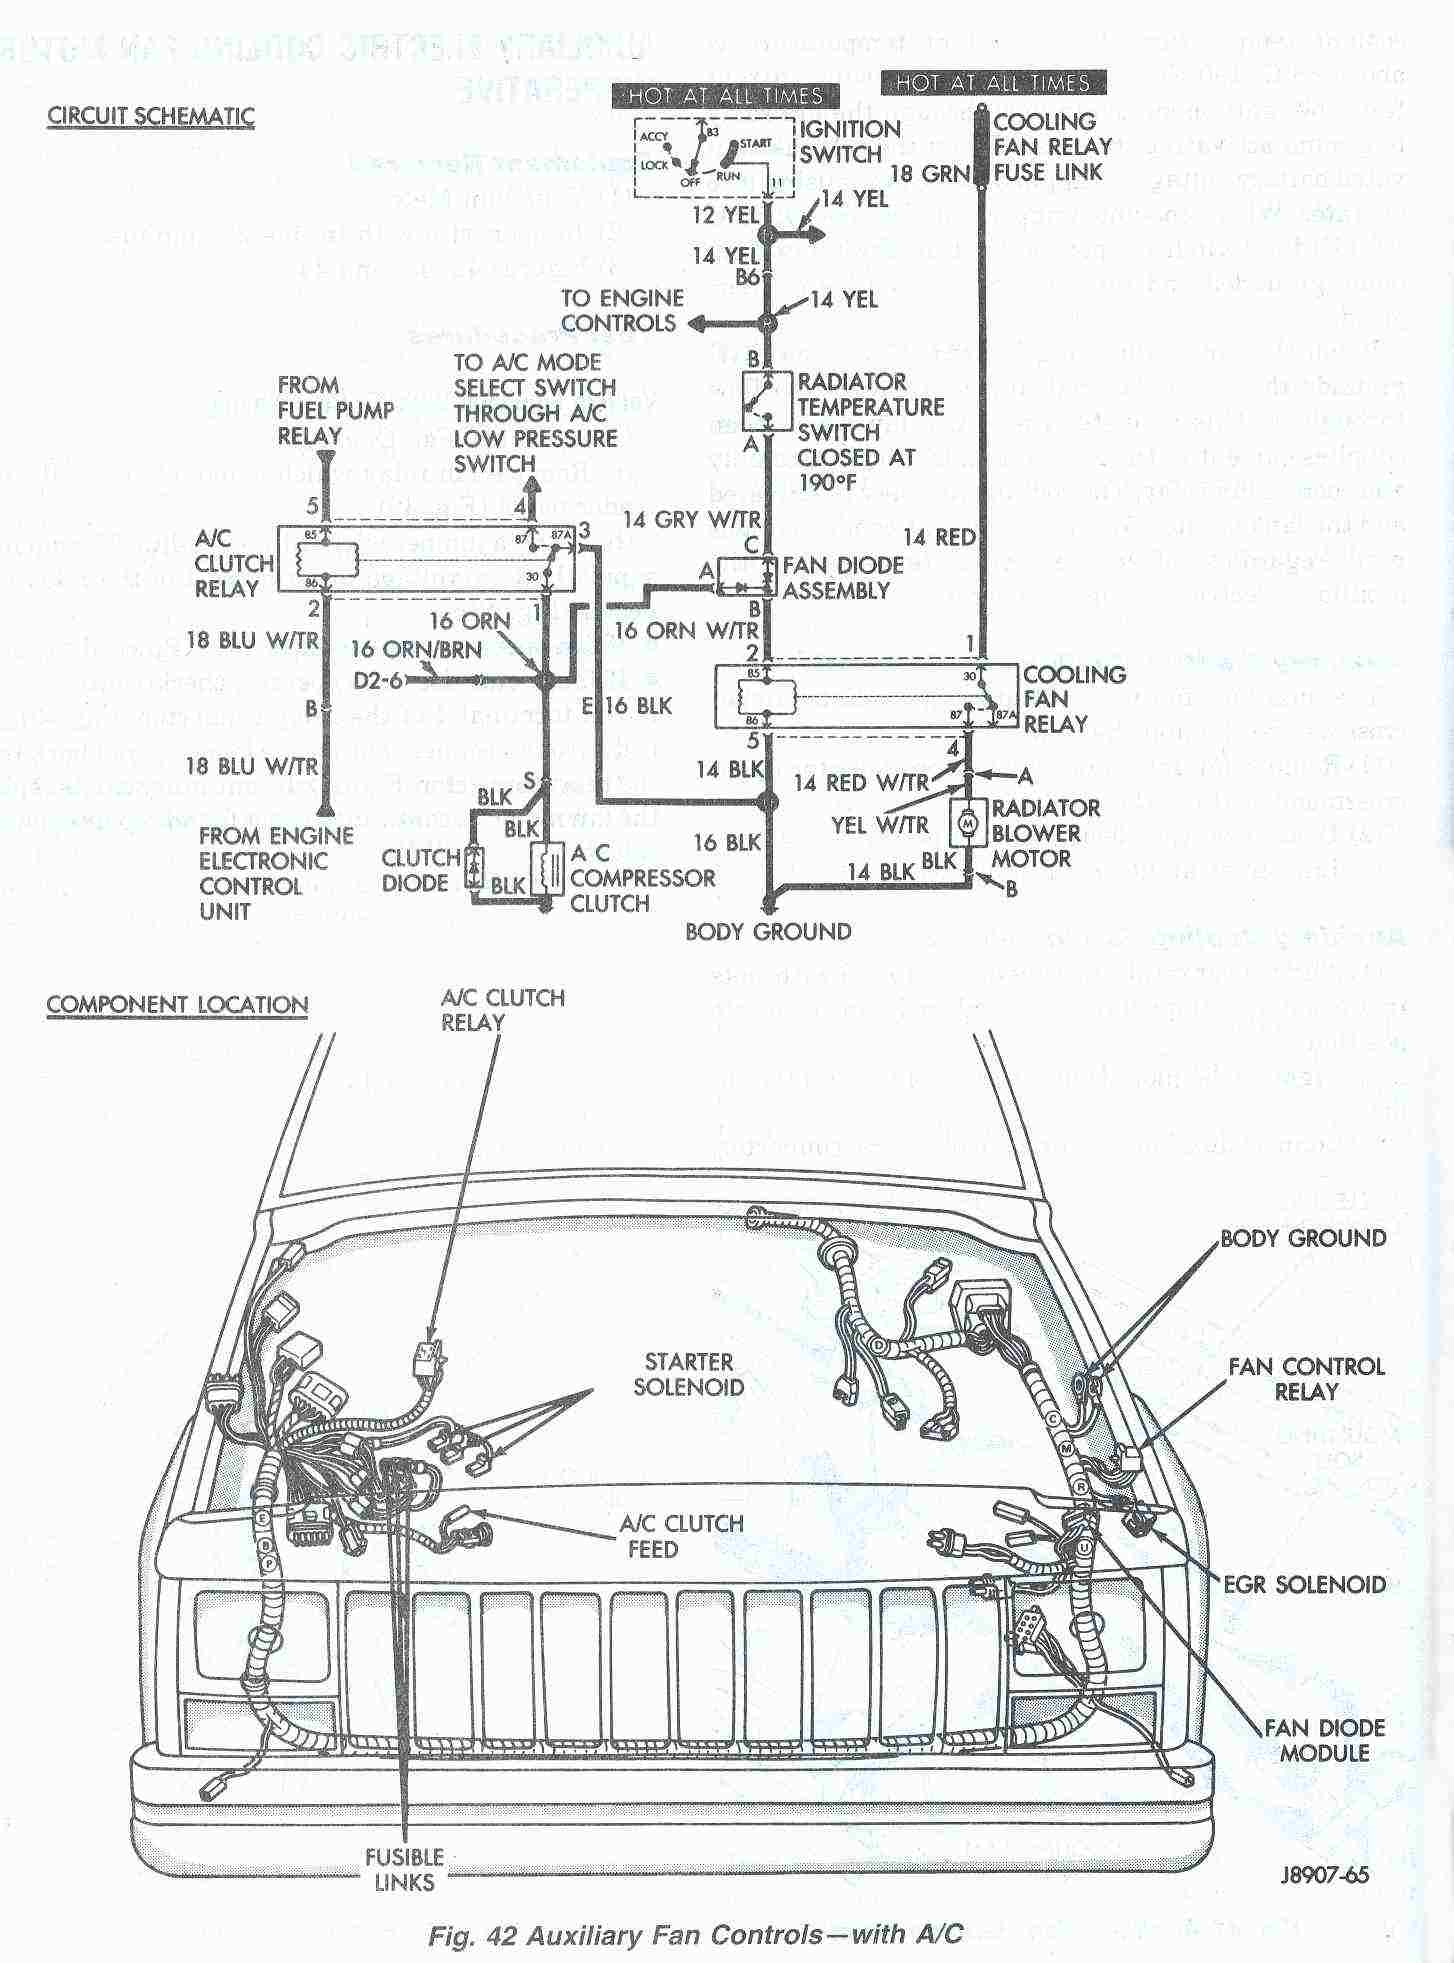 Jeep Cherokee Hose Diagram - Carbonvote.mudit.blog • on 2000 jeep cherokee bcm location, 1986 jeep comanche wiring diagram, jeep cherokee radiator diagram, jeep liberty ac wiring diagram, 2000 jeep cherokee engine swap, 2000 jeep grand cherokee blower motor fuse, 2000 jeep cherokee air conditioning, jeep cherokee heater diagram, 2000 jeep cherokee headlight, 2009 jeep patriot wiring diagram, 2000 jeep cherokee frame, 2000 jeep cherokee shift solenoid, 2010 jeep patriot wiring diagram, jeep cherokee distributor diagram, 2000 jeep cherokee sub box, 2000 jeep cherokee horn, 94 jeep cherokee engine diagram, 2000 jeep cherokee fan belt, 1991 jeep comanche wiring diagram, 1998 dodge van wiring diagram,